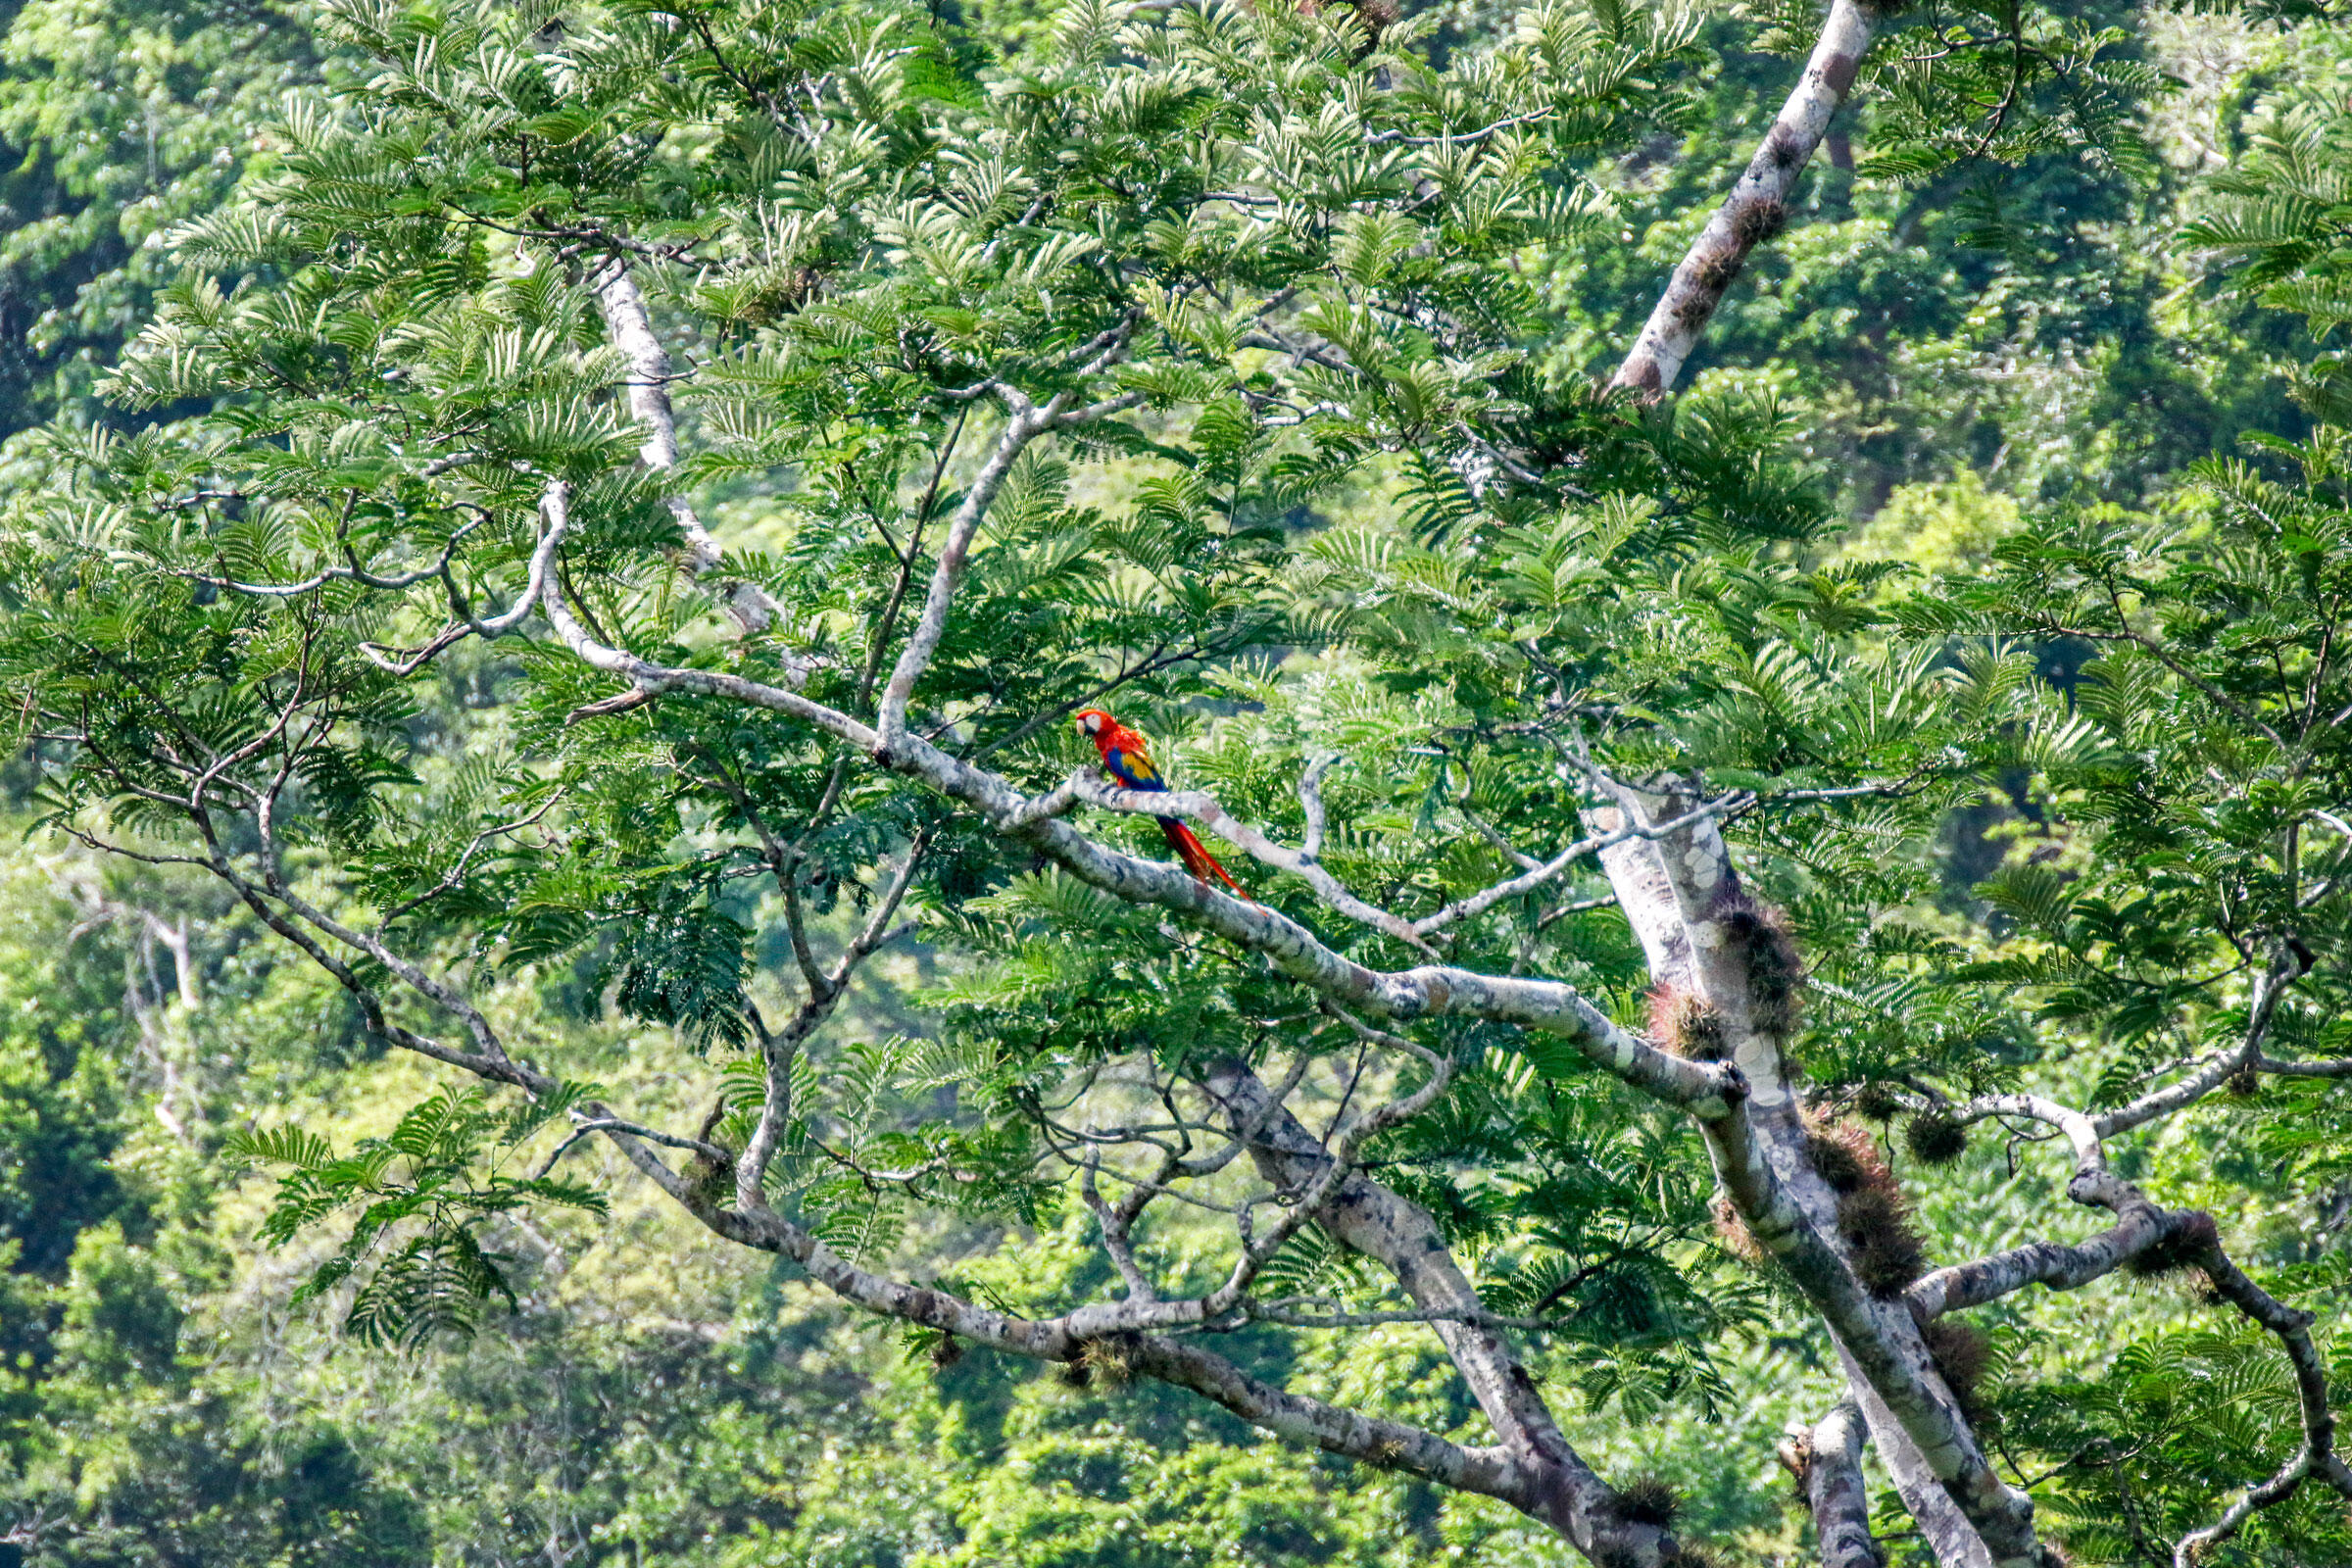 A Scarlet Macaw sits in the upper branches of a quamwood tree in Belize. Camilla Cerea/Audubon